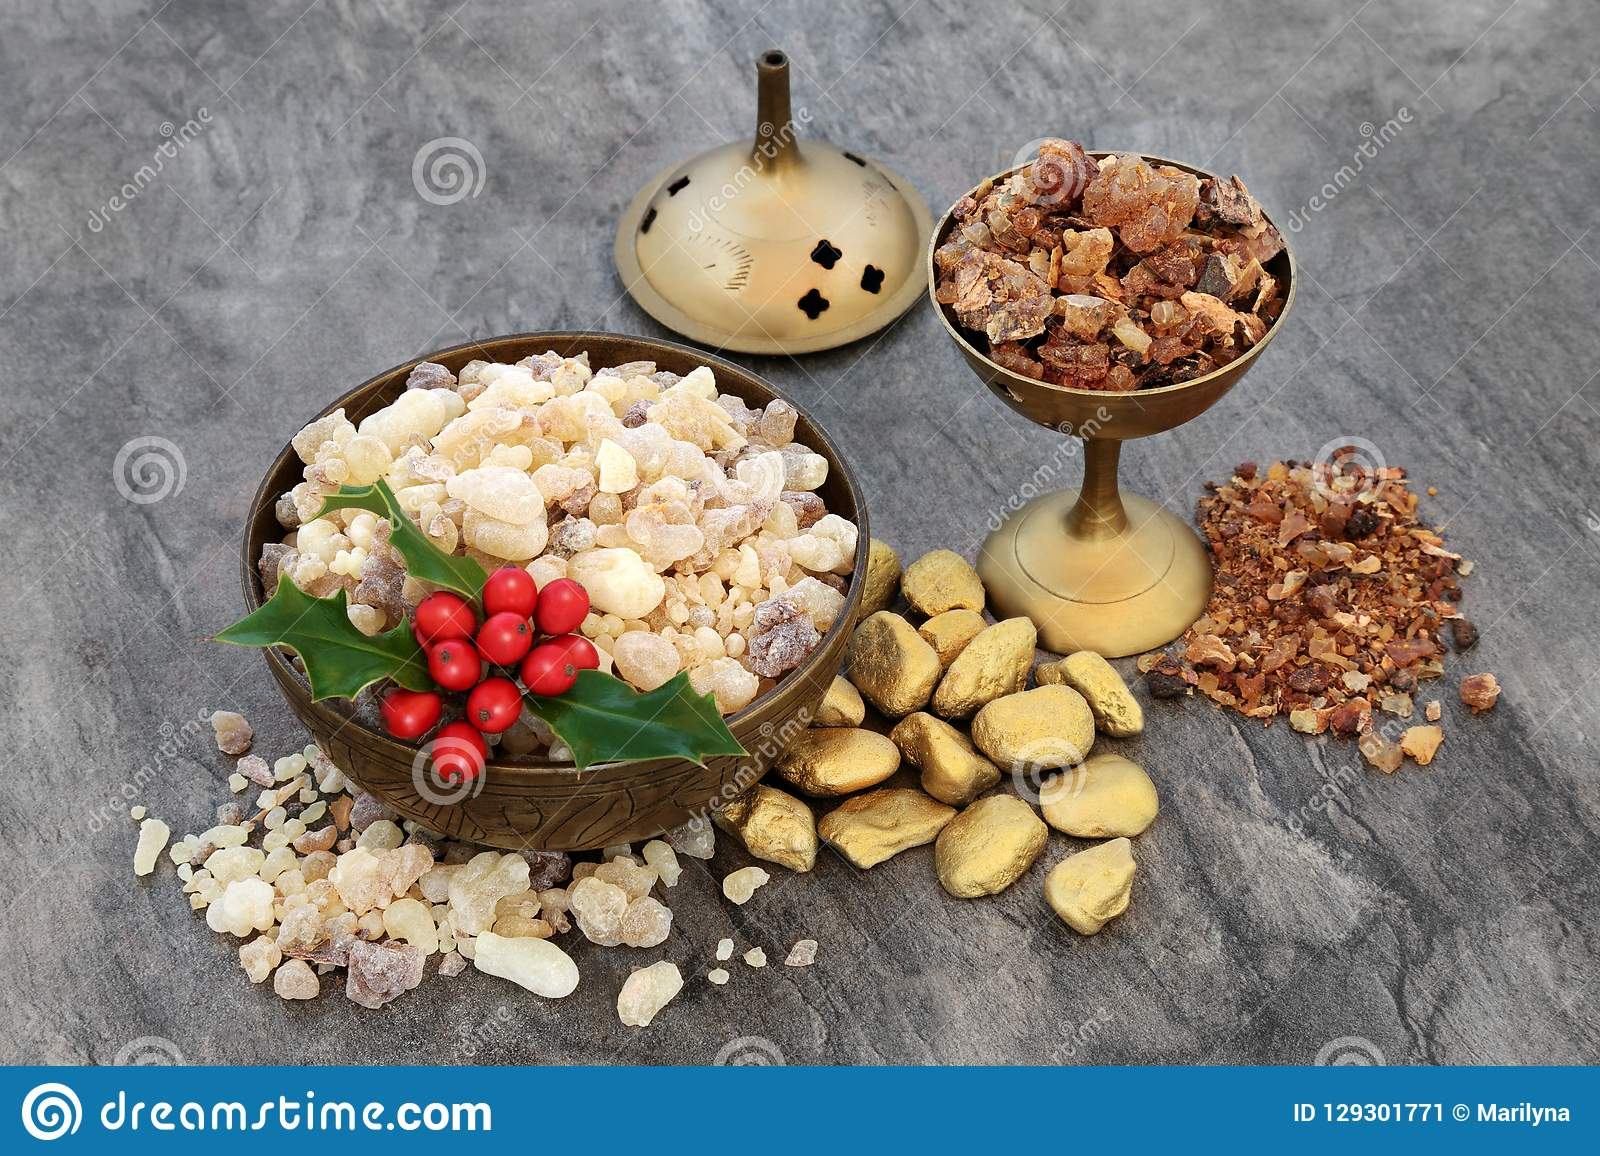 Gold Frankincense And Myrrh Christmas Gifts.Gold Frankincense And Myrrh With Holly Stock Image Image